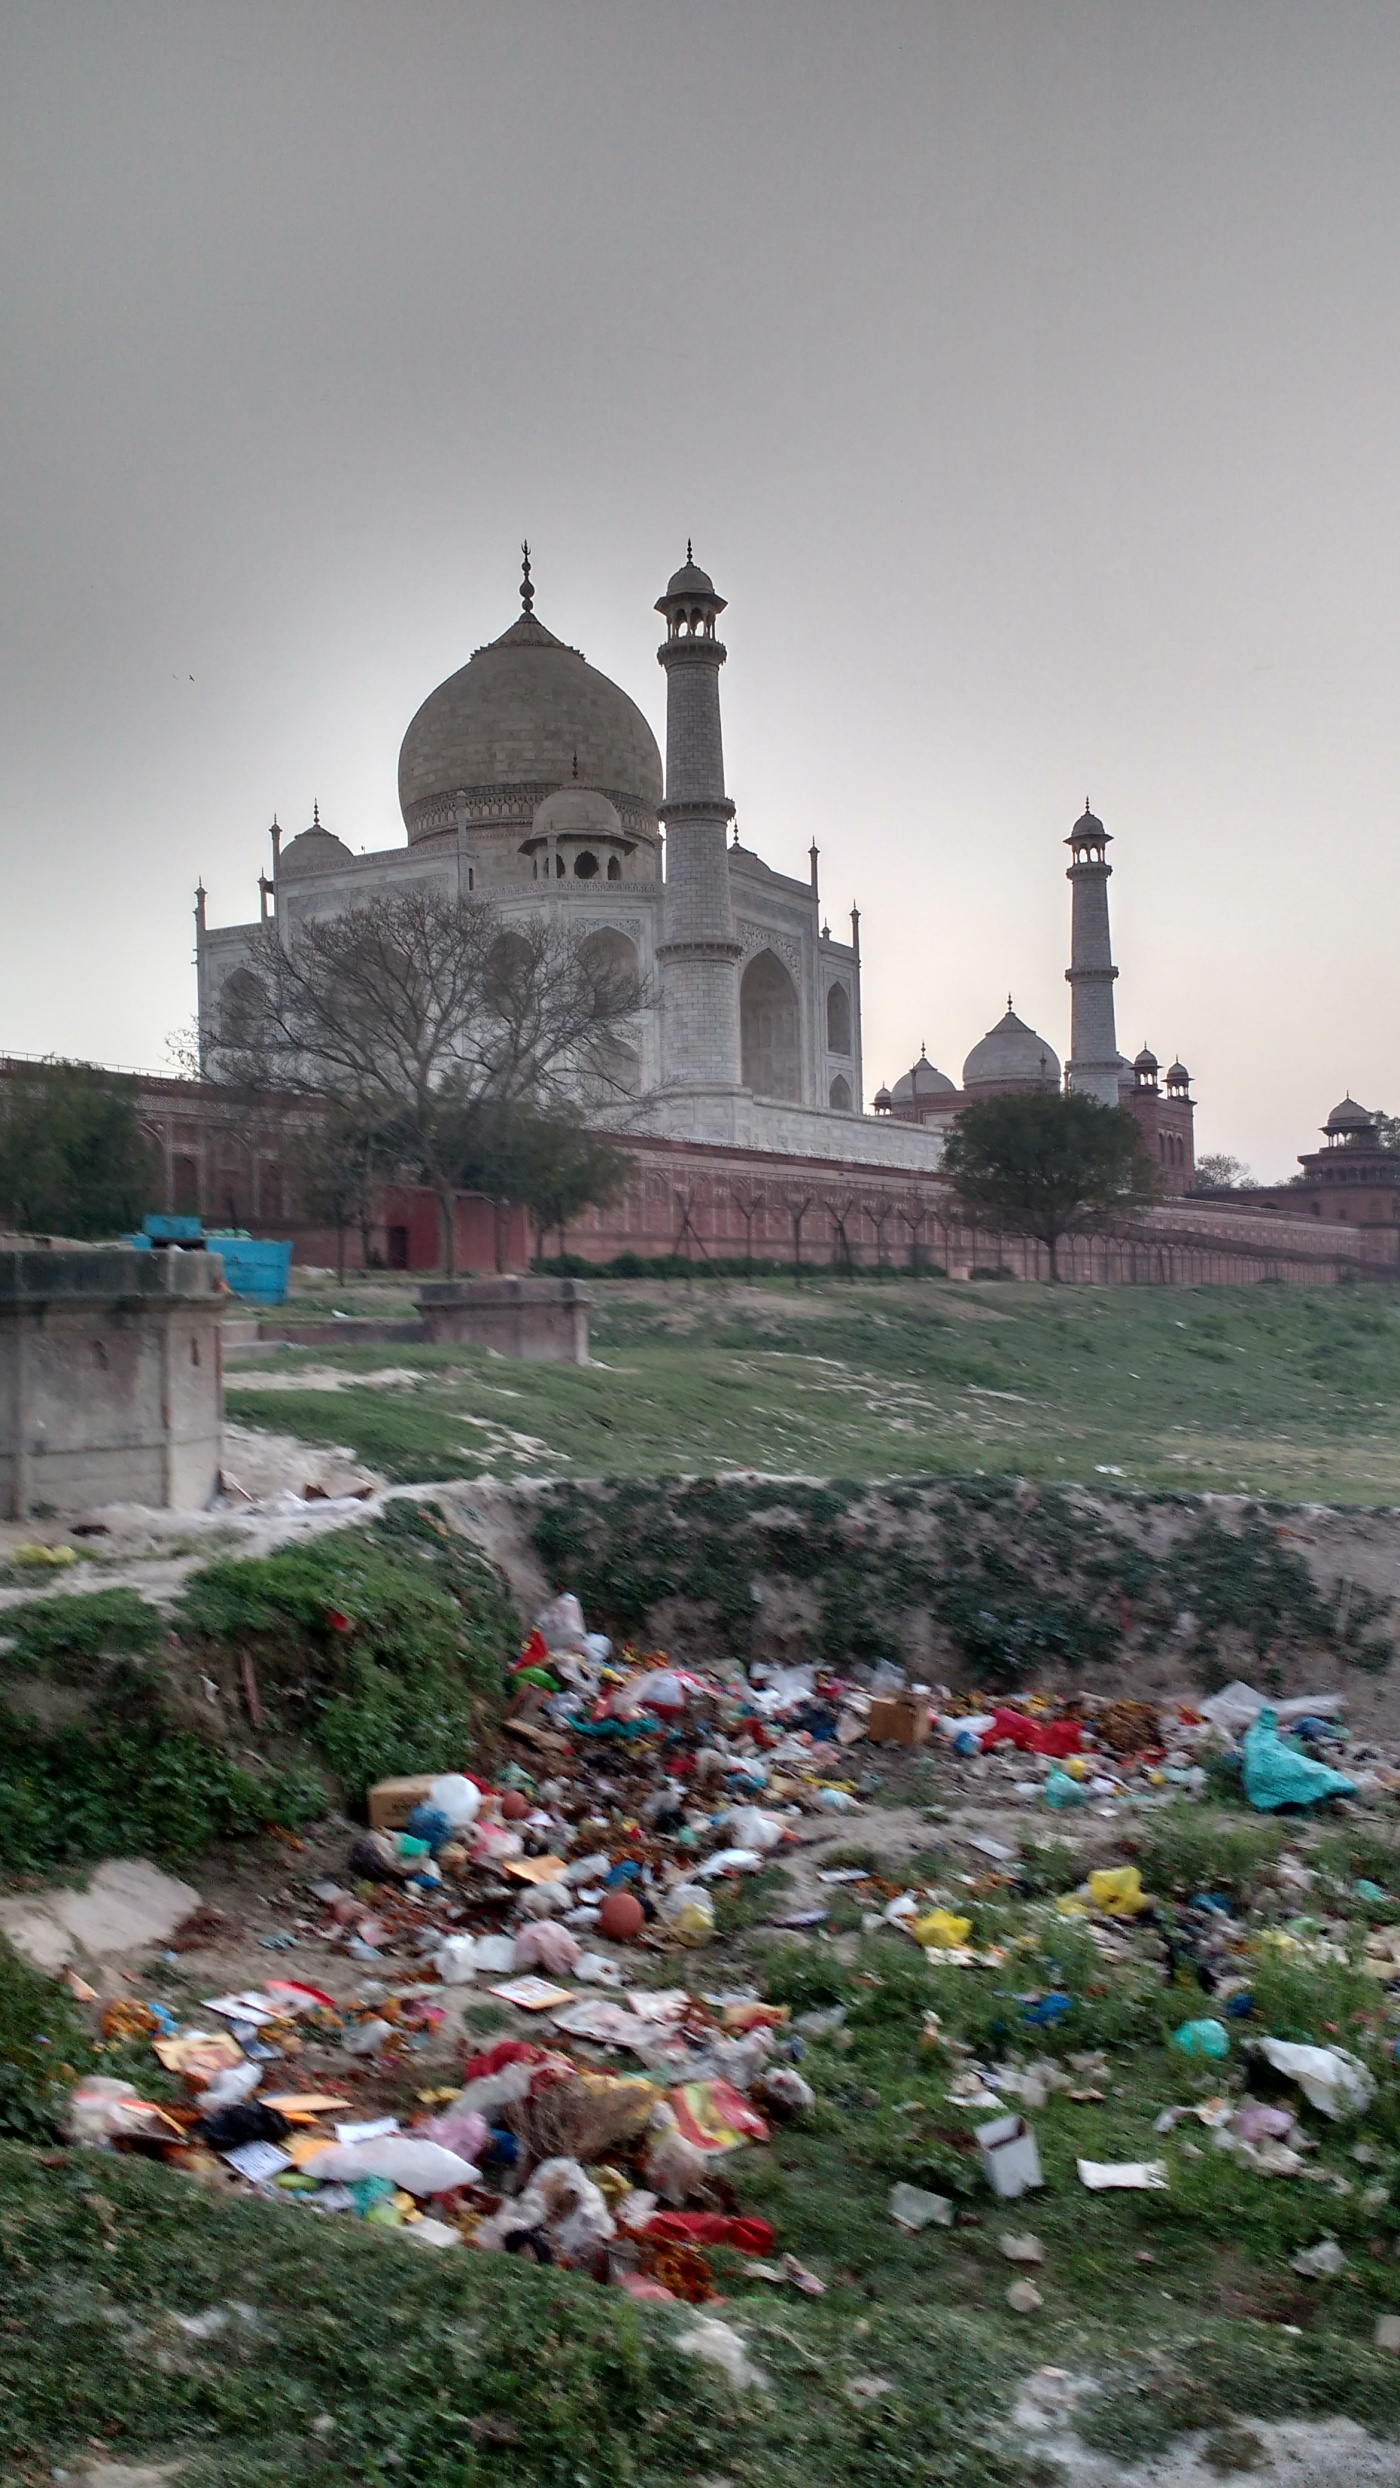 Waste management in India – We are going on a bear hunt